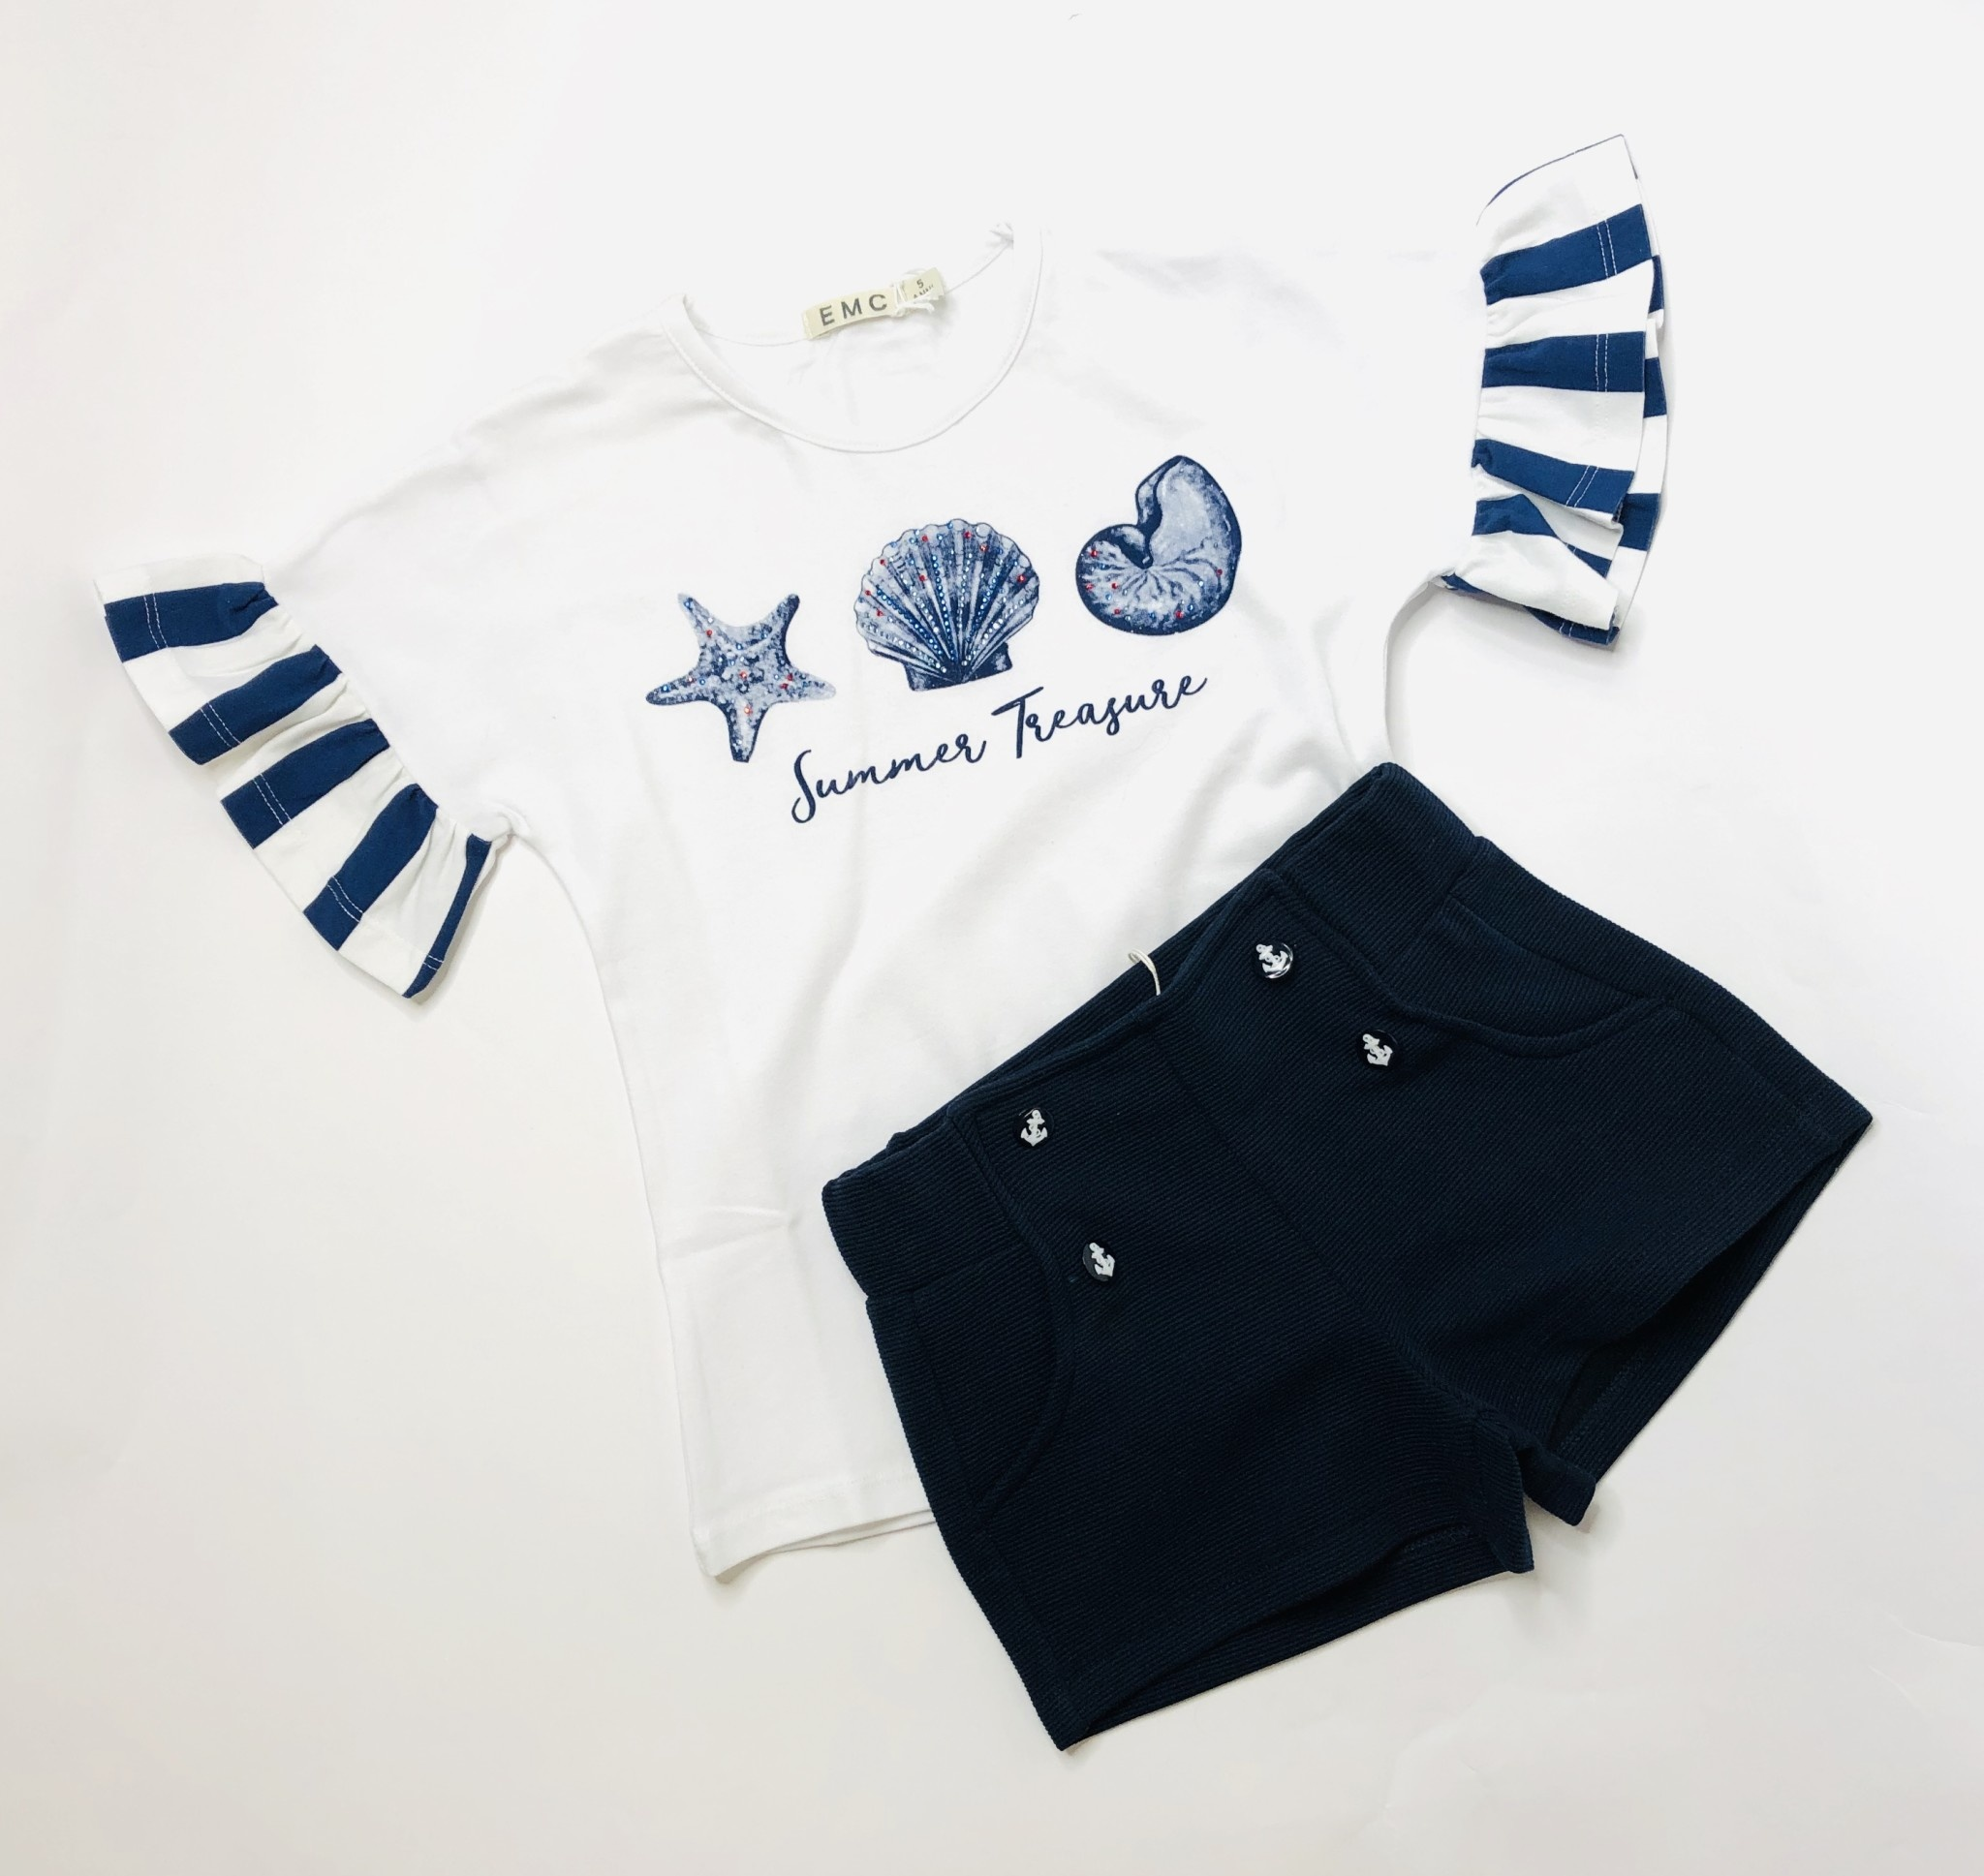 EMC EMC Shell T-shirt & Navy Short Set